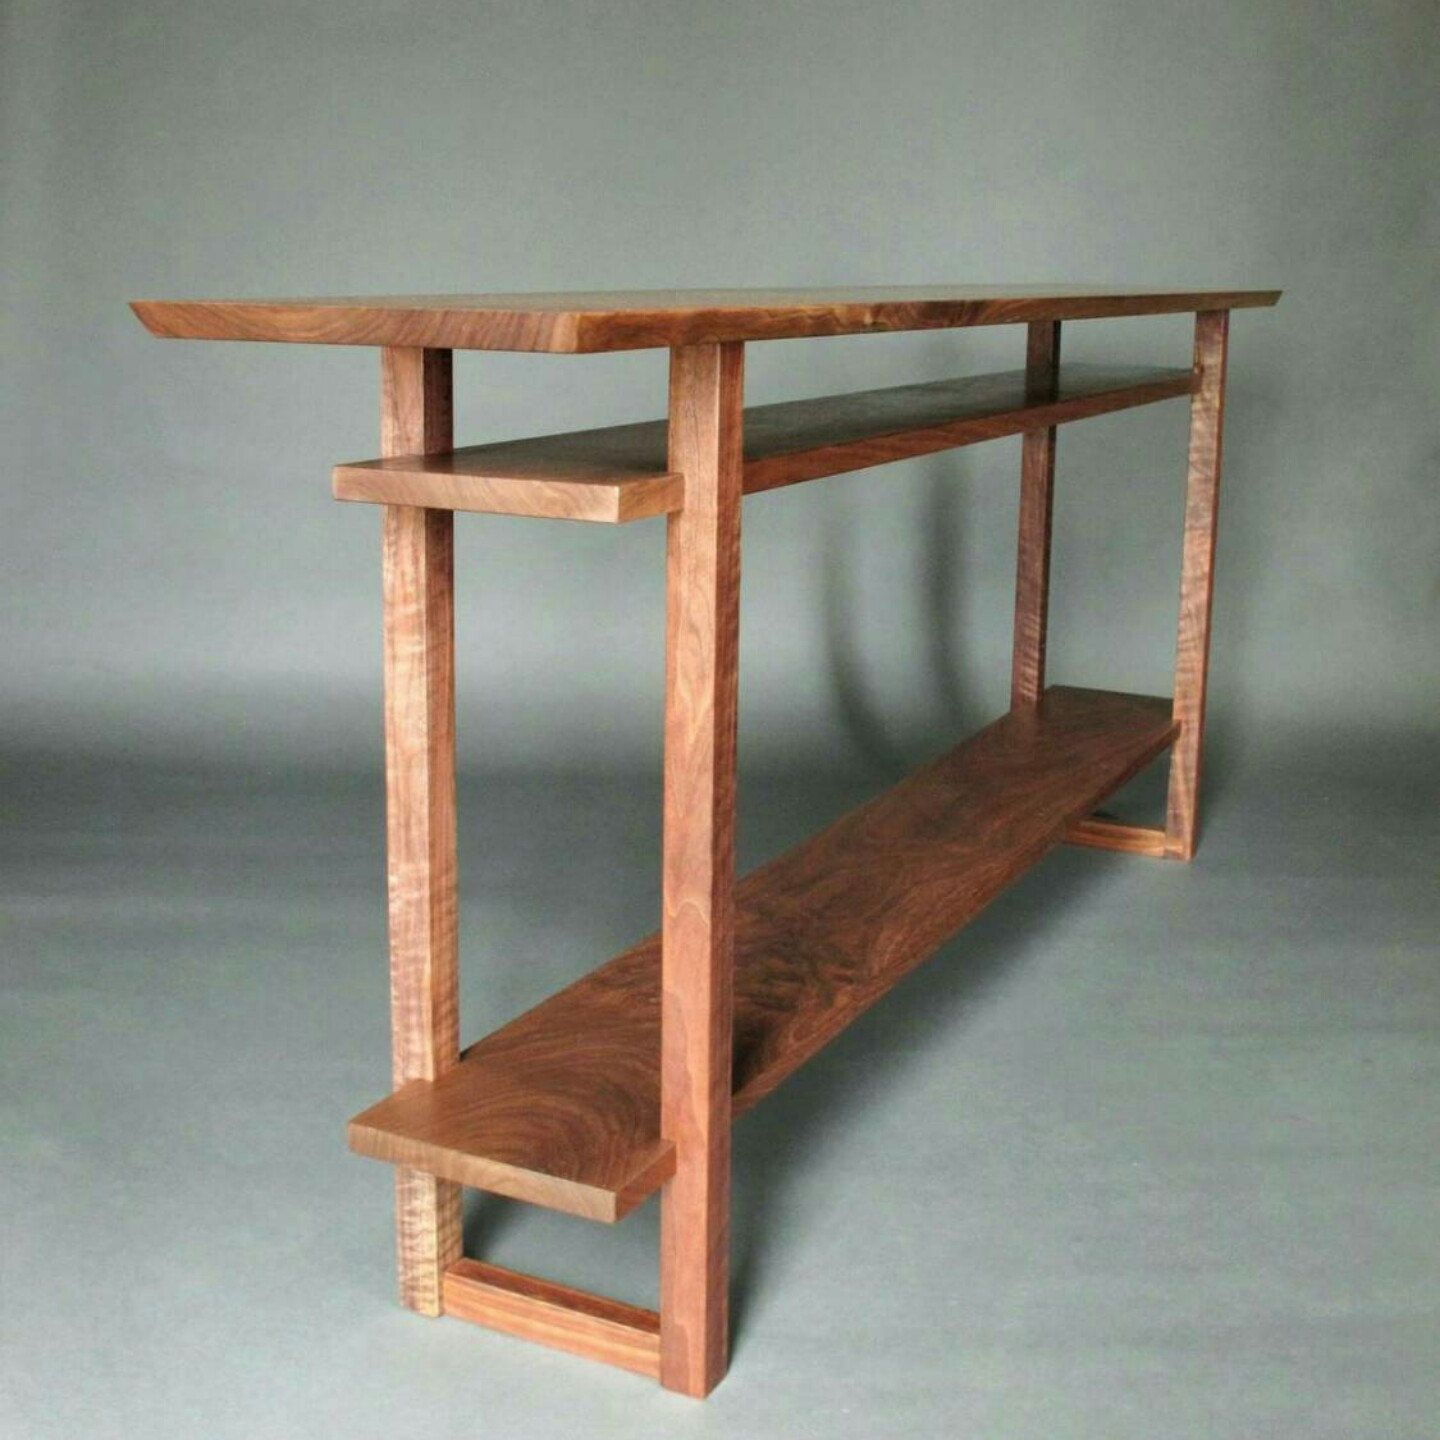 Small Narrow Wood Table With Two Shelves: Small Side Table, Narrow End Table,  For Accent Table/ Nightstand  Handmade Wood Furniture